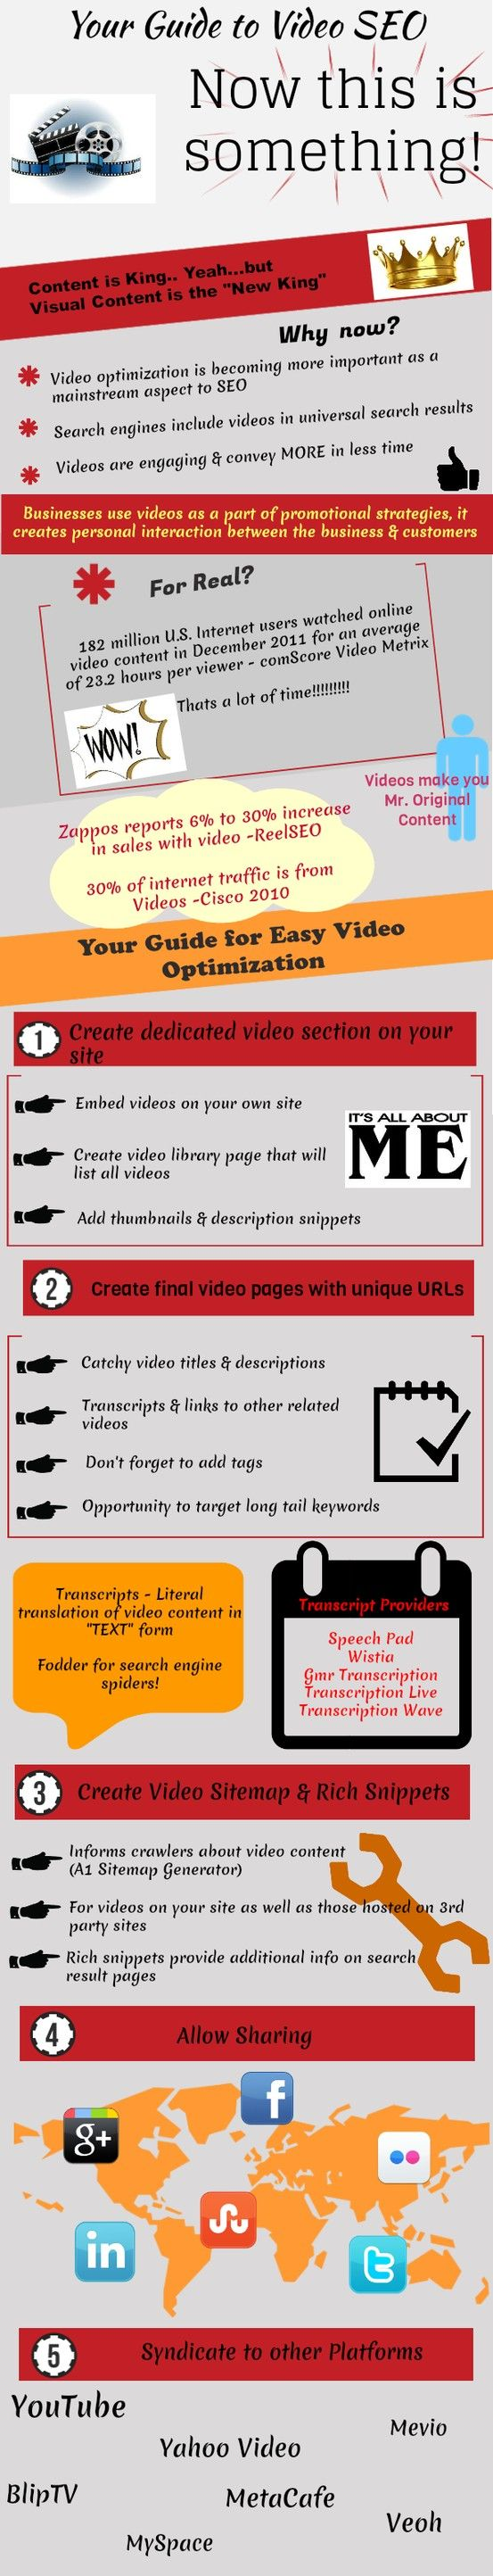 Your guide to video search engine optimization